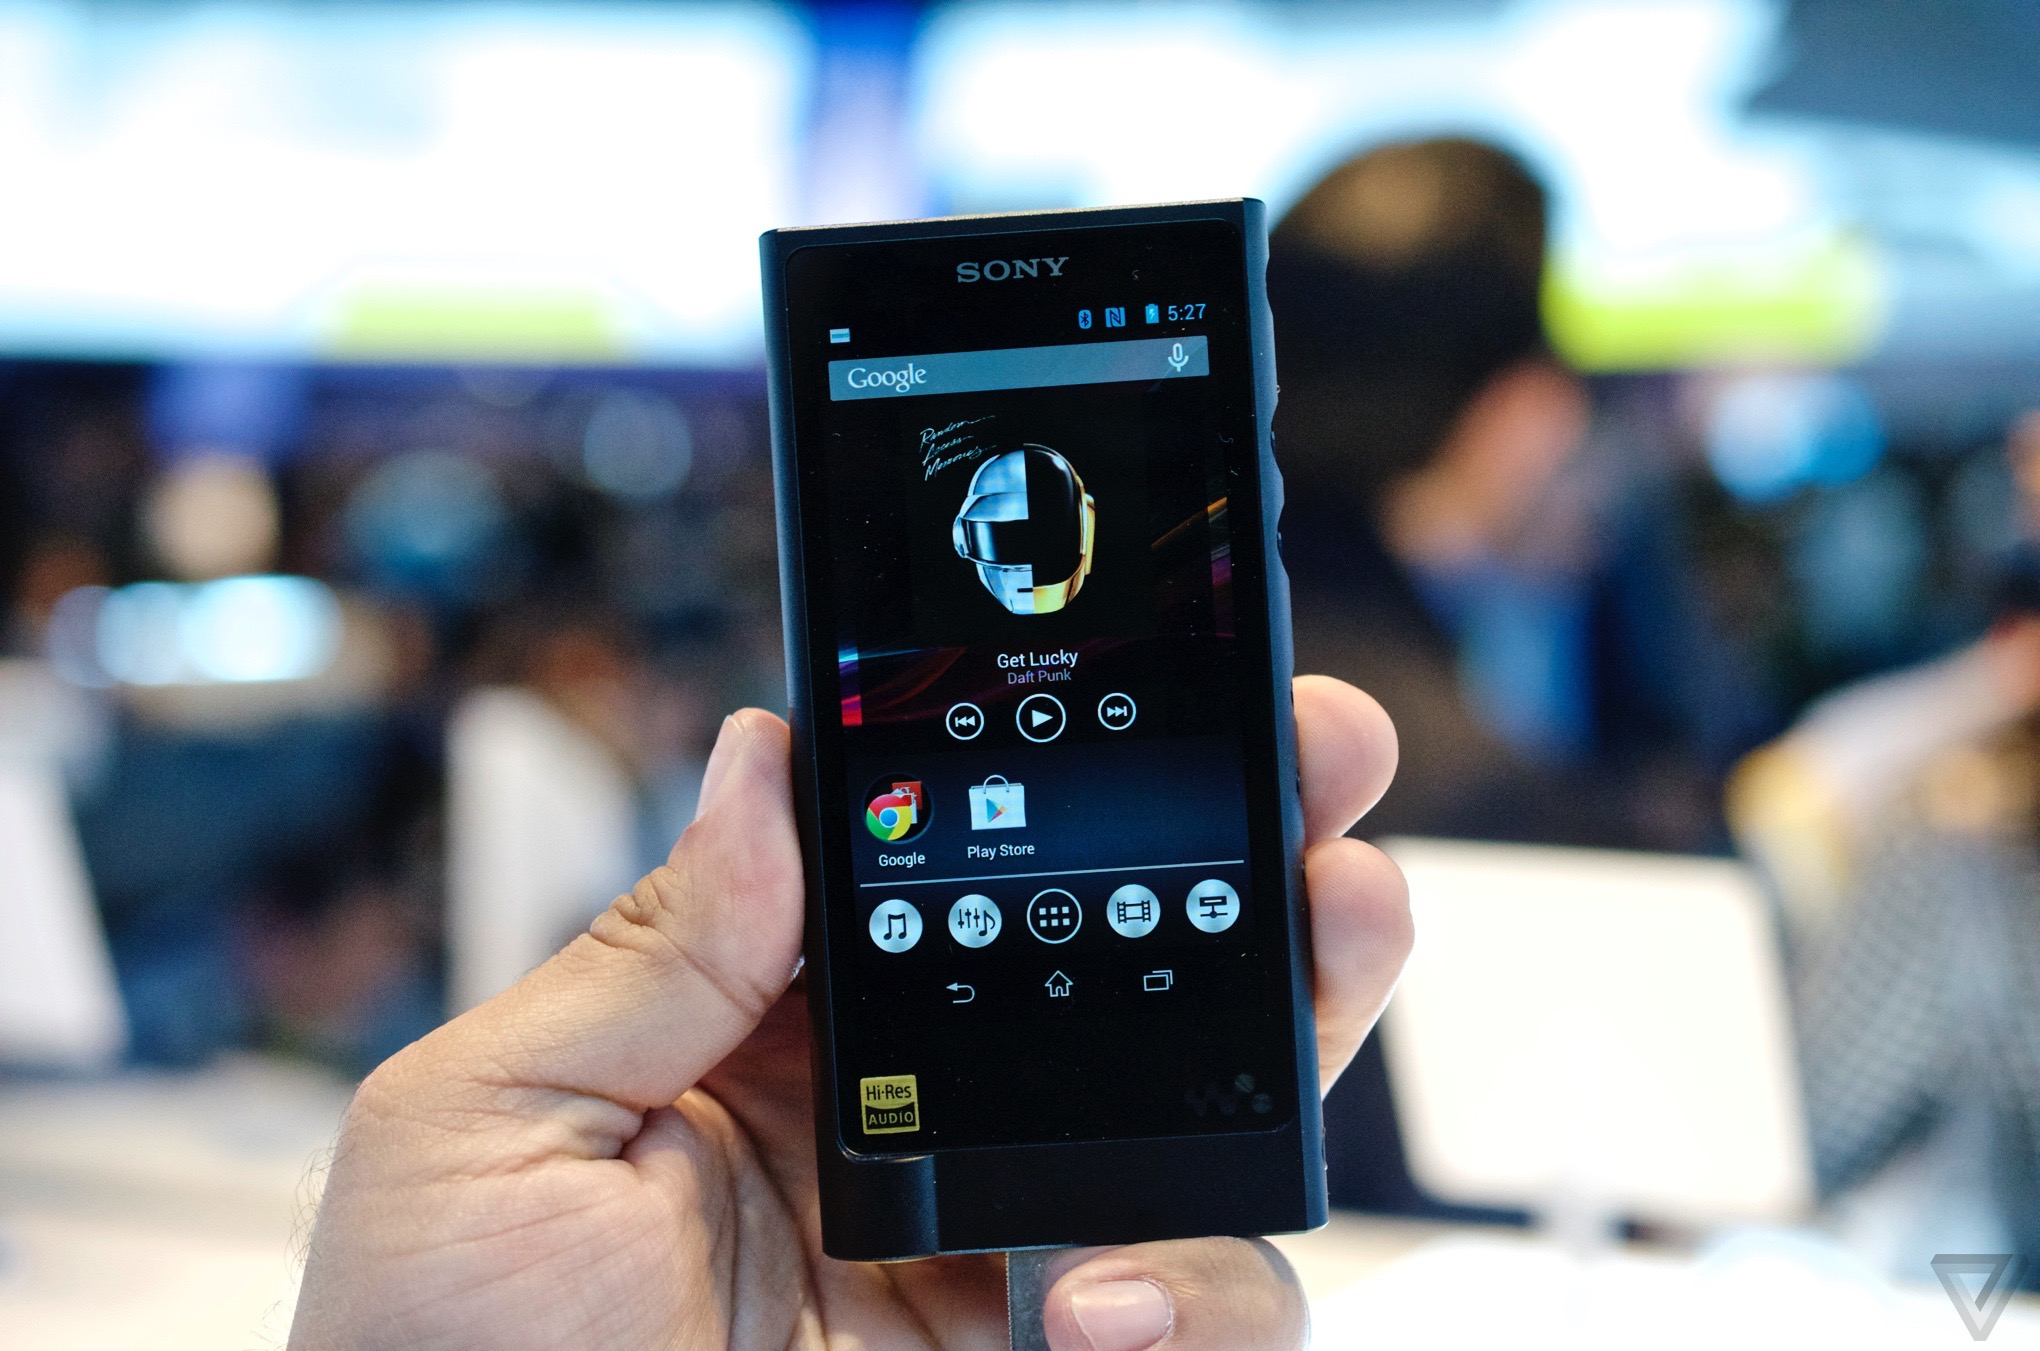 Harga Sony Nw Terbaru 2018 Walkman With High Resolution Audio A36 Black This Is The New Verge See All Latest Ces 2015 News Here